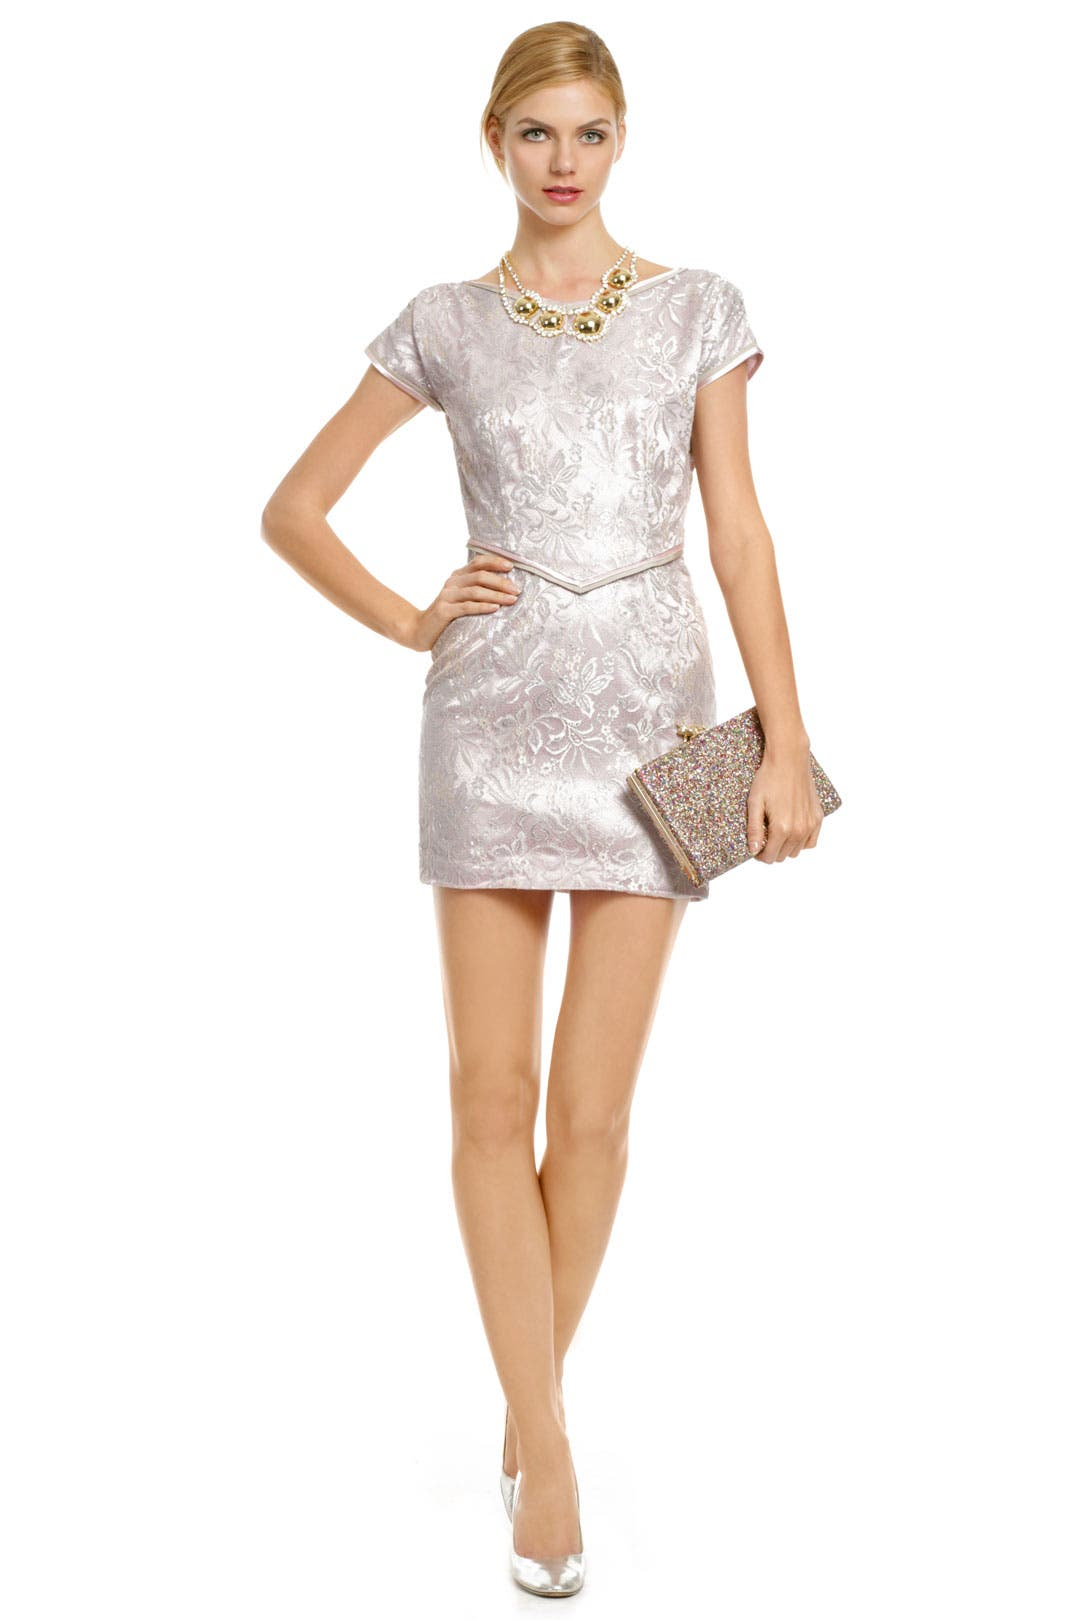 Just a Hint of Sparkle Dress by Radenroro